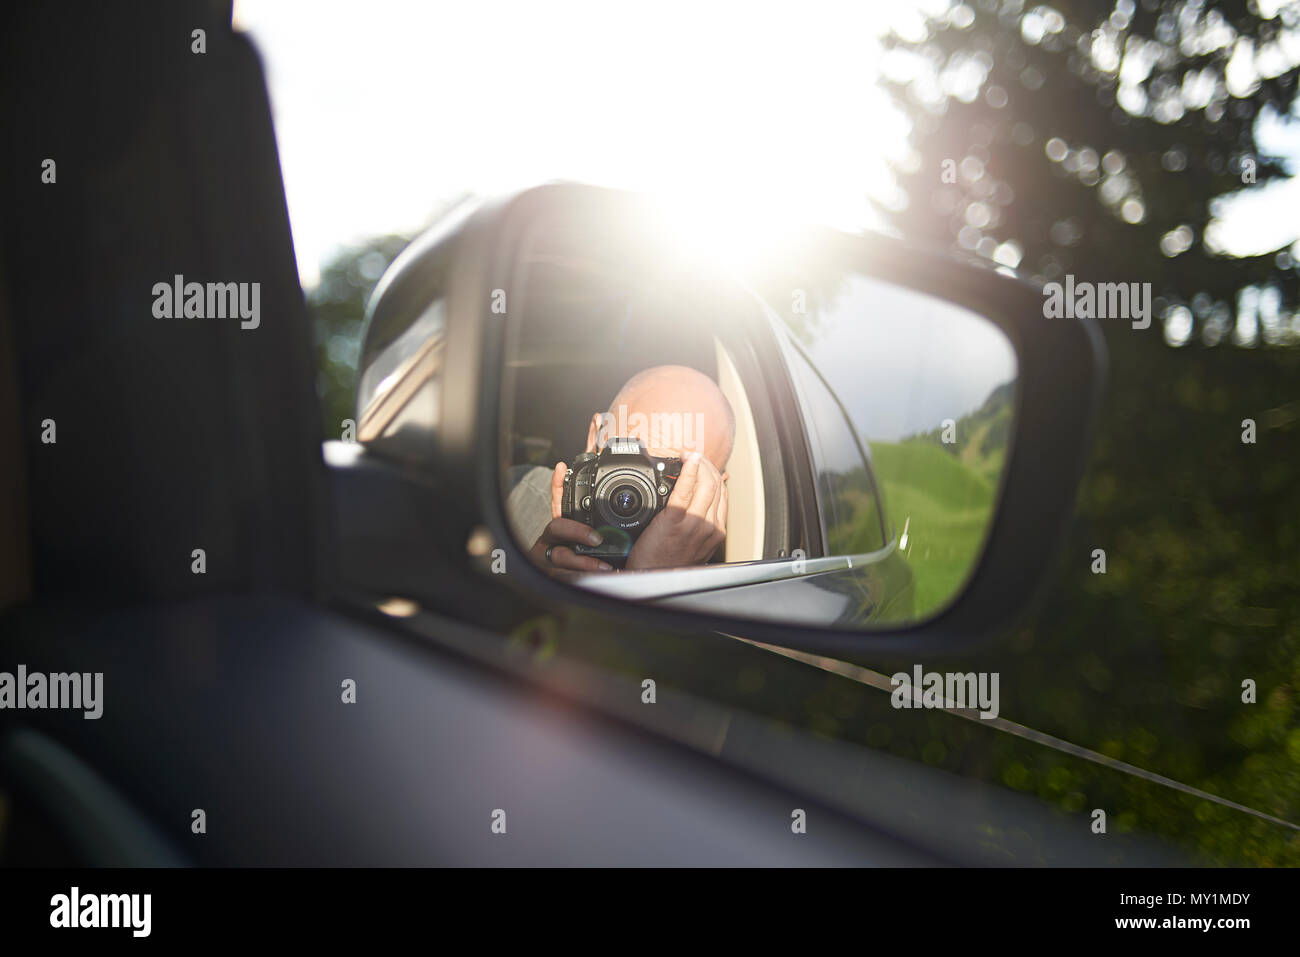 Close up of a photographer with a DSLR camera taking a photo of himself in the outside car mirror whilst sitting in the car on the way to the mountain Stock Photo